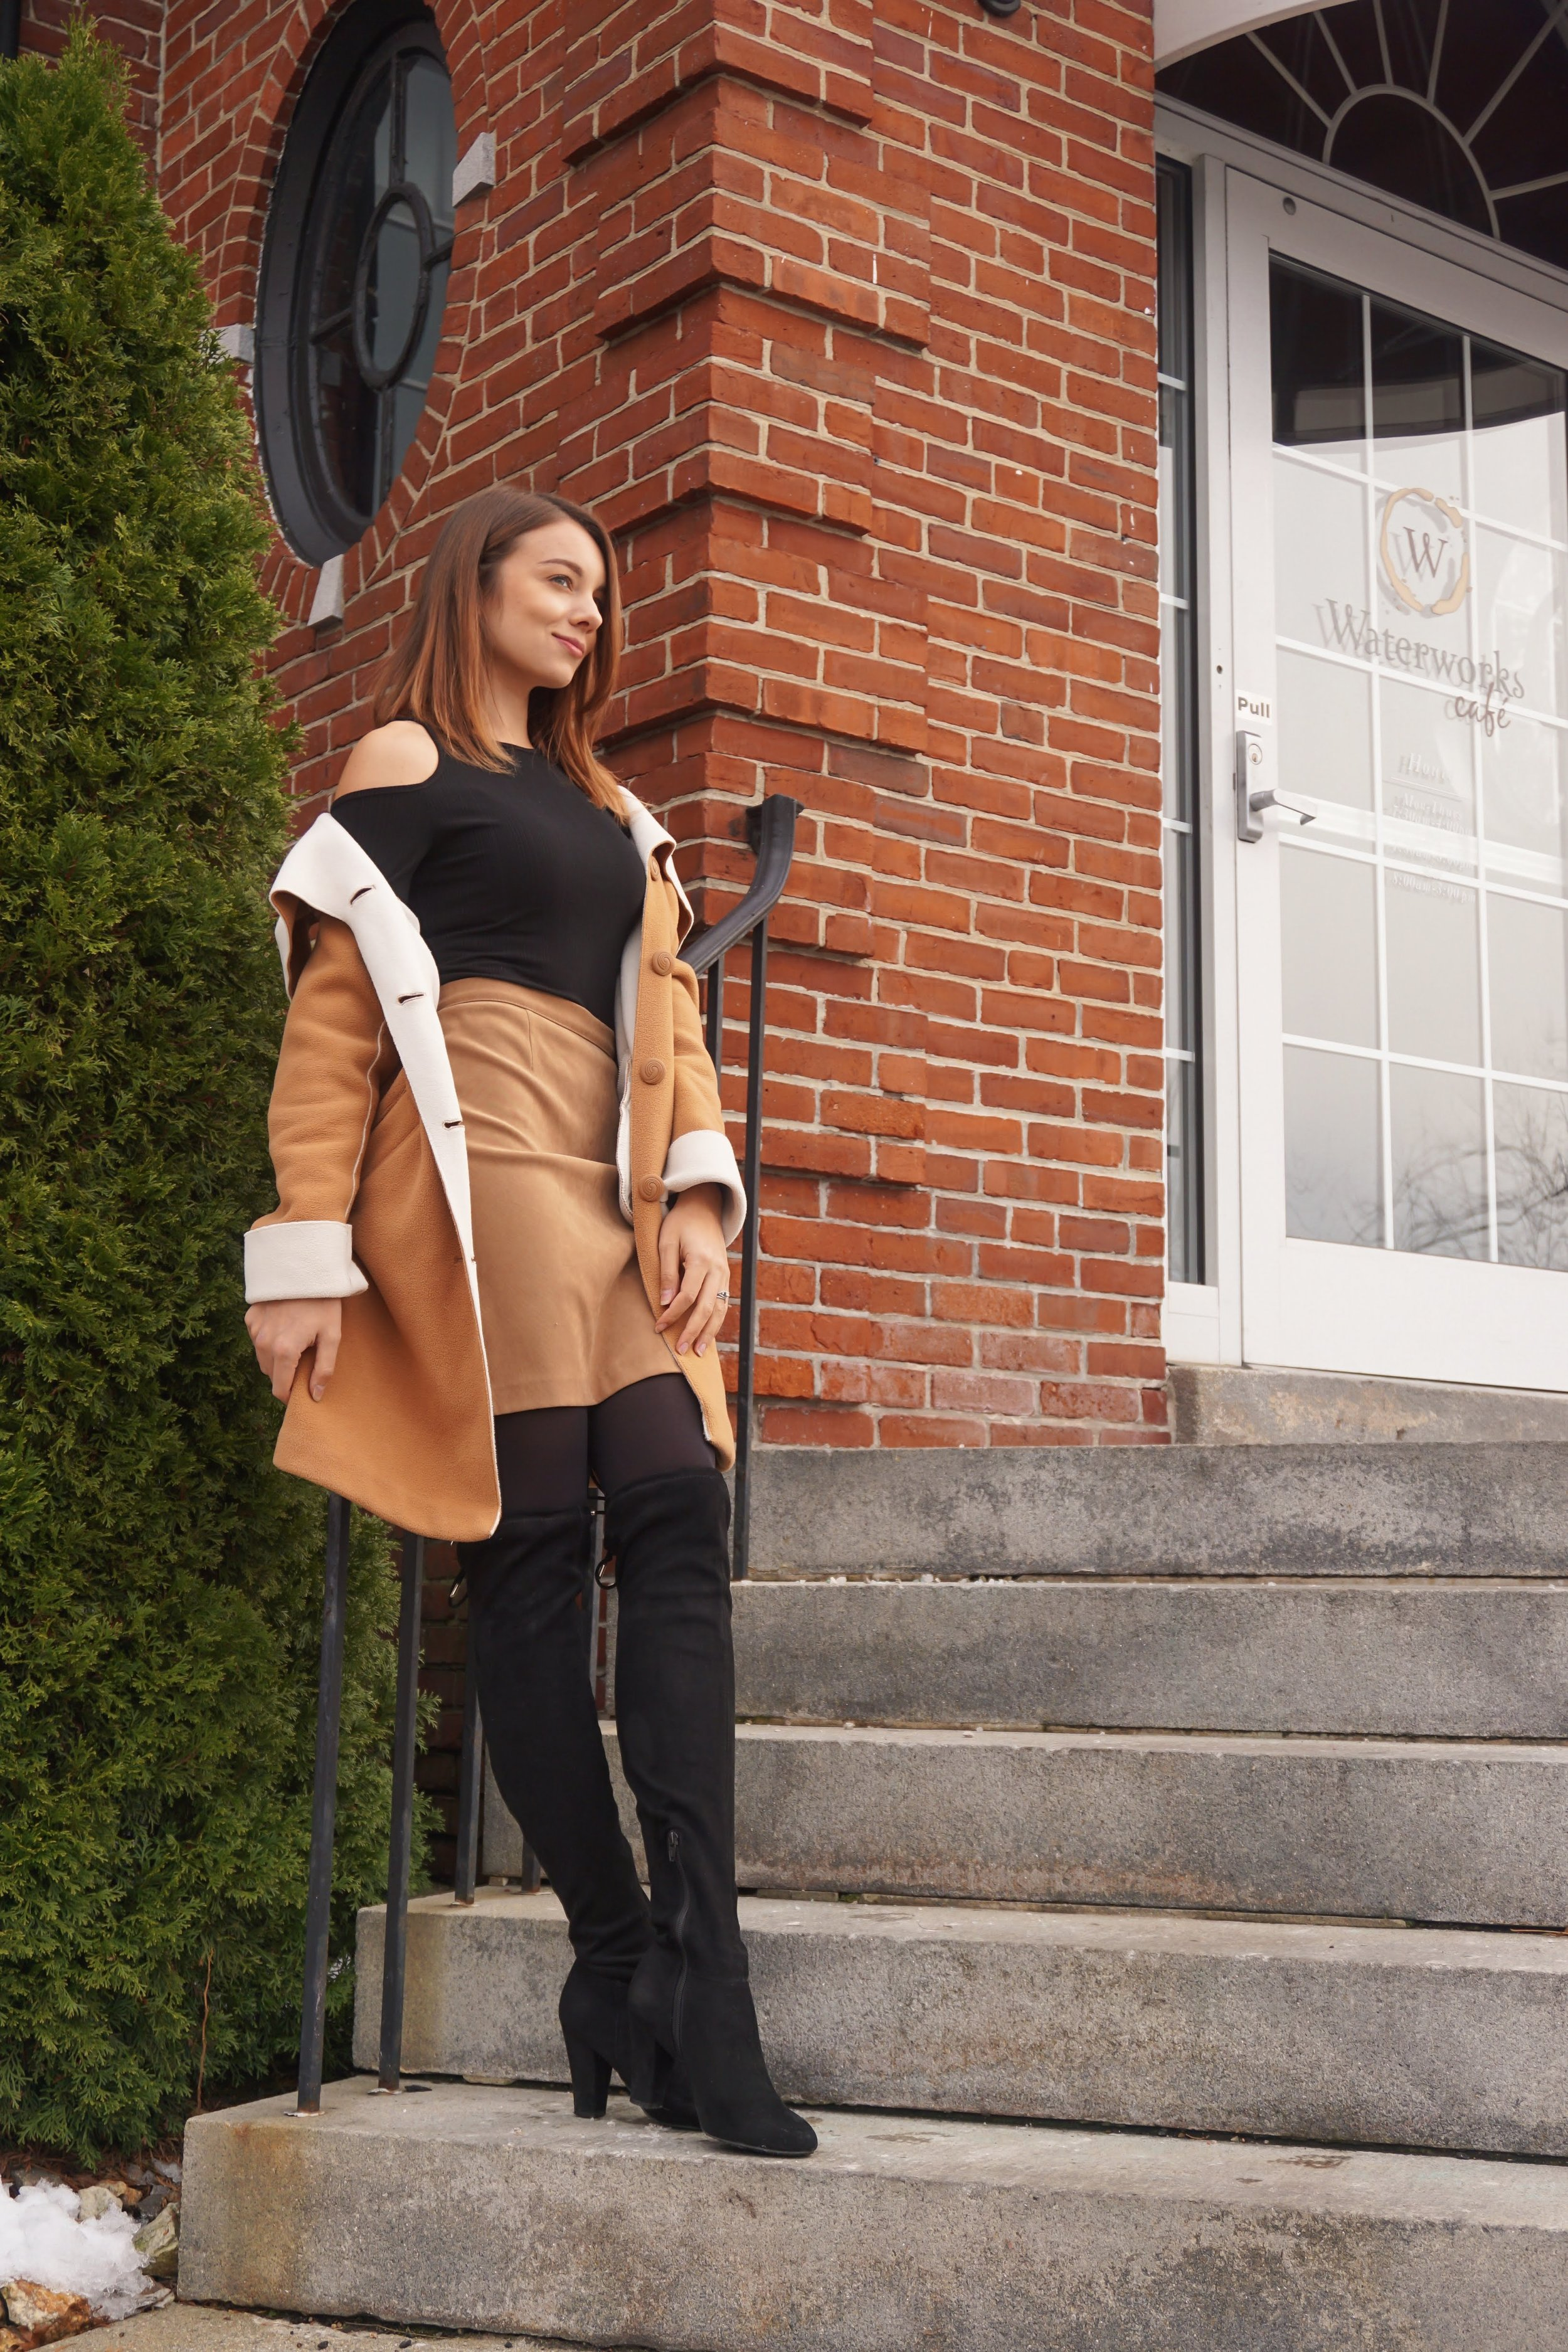 Lifestyle blogger posing on the stairs near a cafe, wearing a brown coat and skirt, black shirt, ,and black over the knee boots.